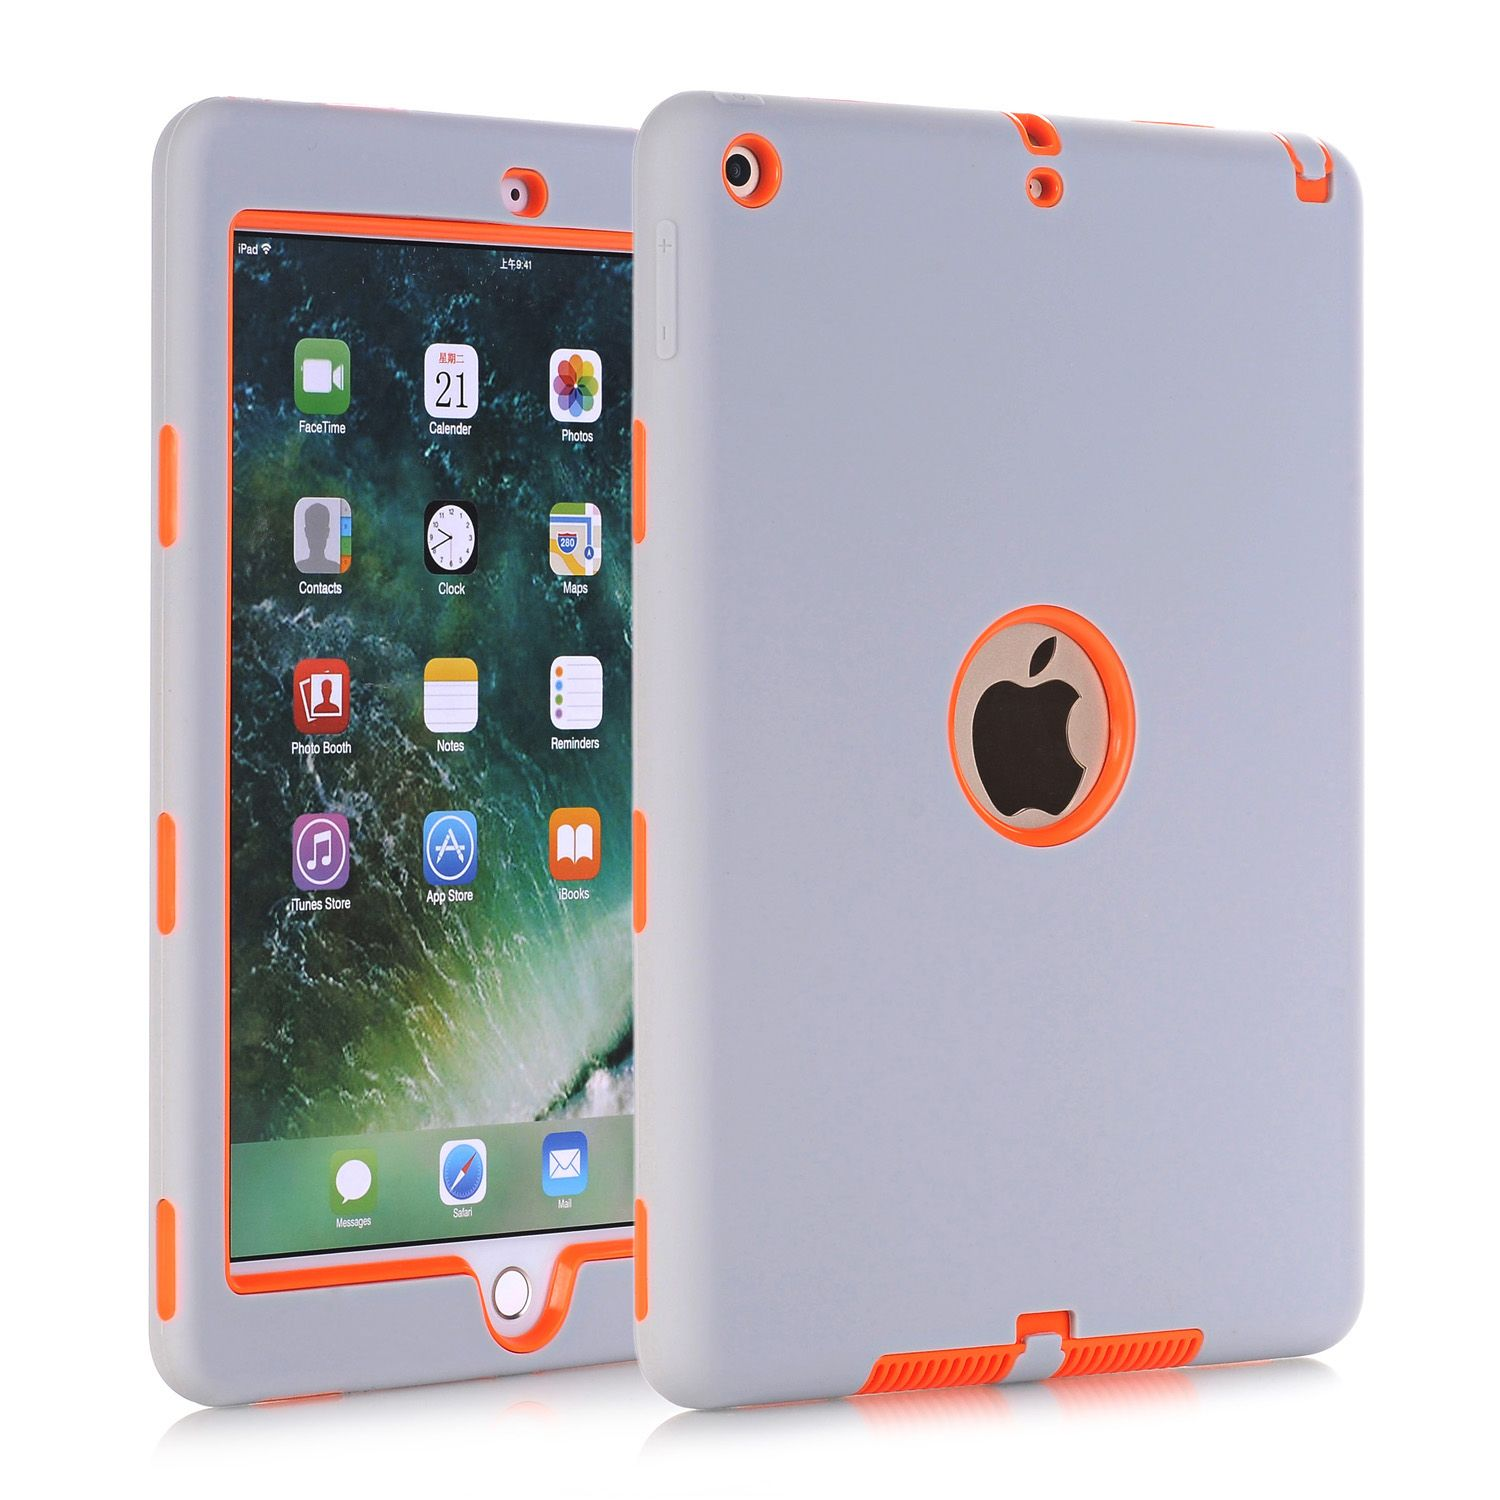 Cases For New iPad 9.7 2017 (A1822/A1823),High-Impact <font><b>Shockproof</b></font> 3 Layers Soft Rubber Silicone+Hard PC Protective Cover Shell